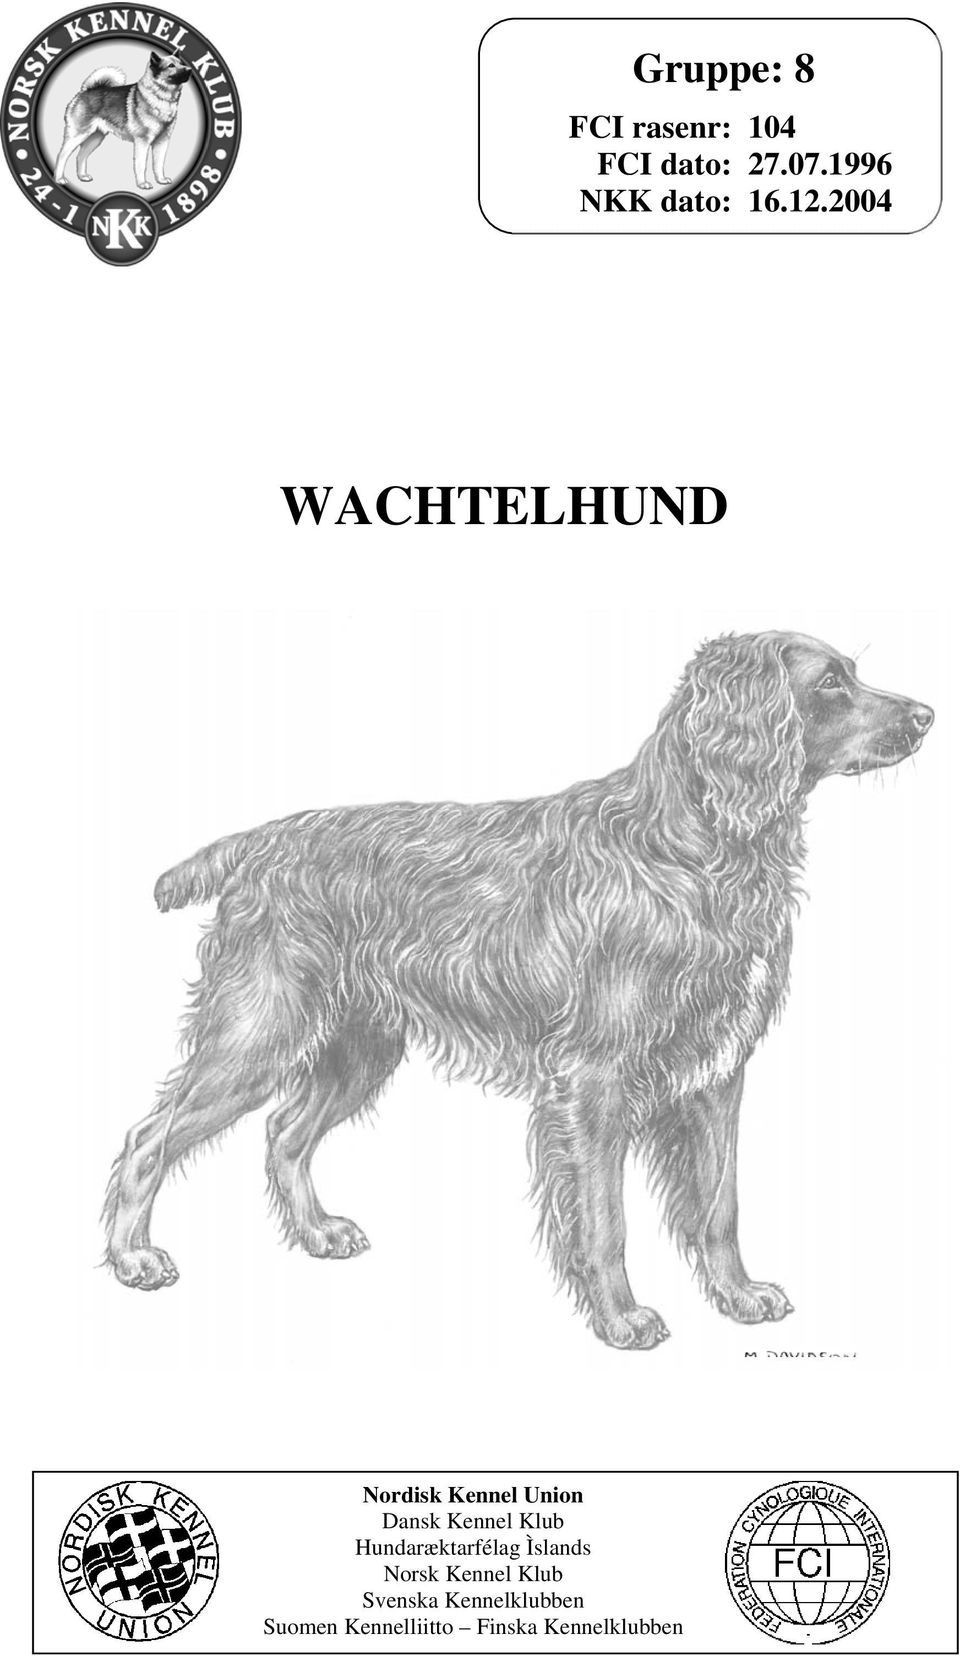 2004 WACHTELHUND Nordisk Kennel Union Dansk Kennel Klub